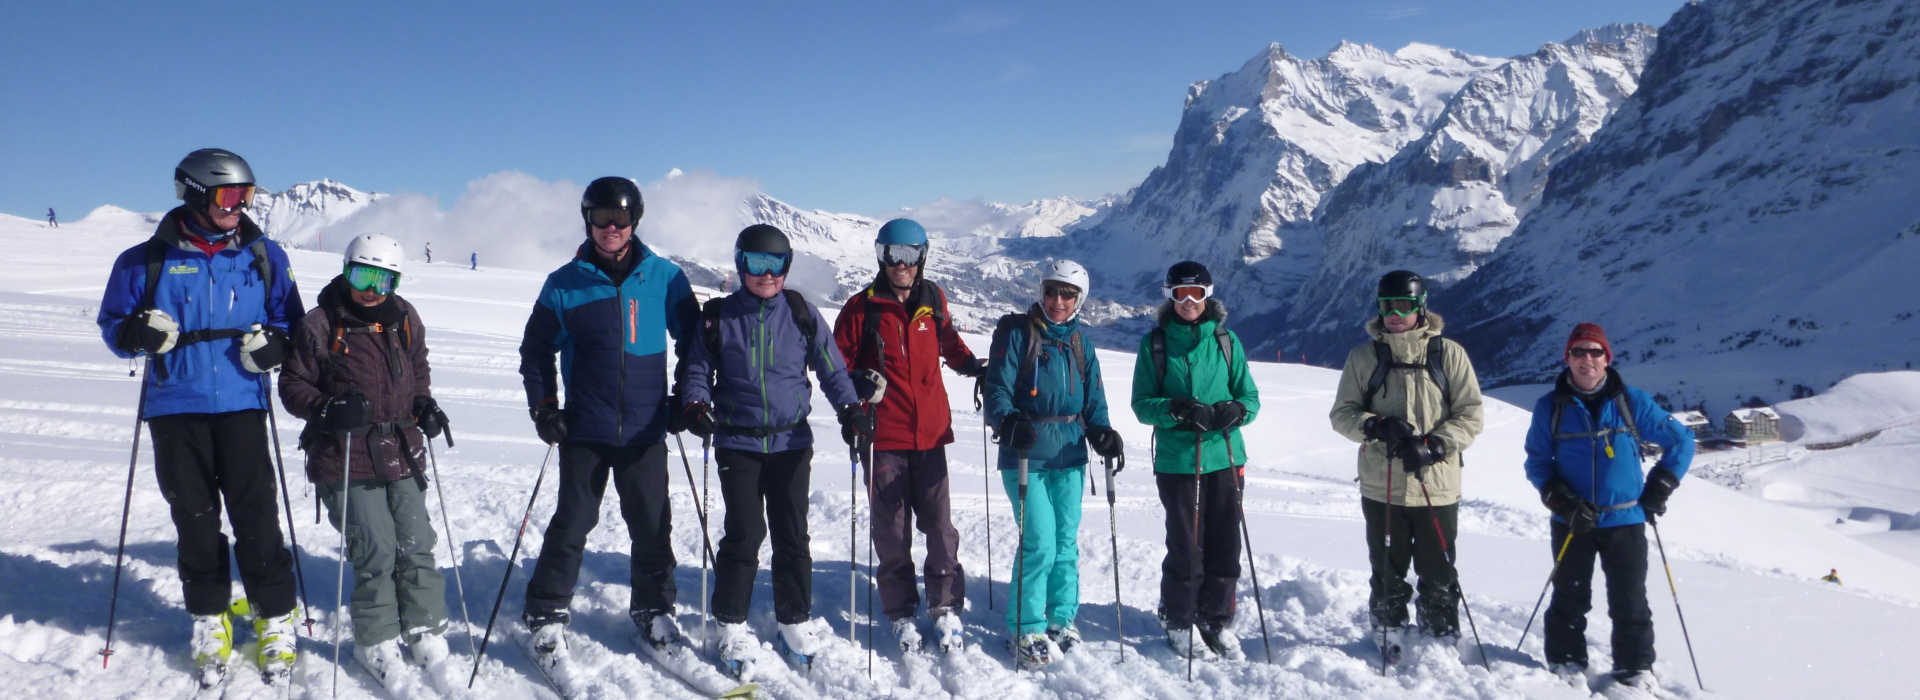 Downhill Only Ski Club - Groups picture